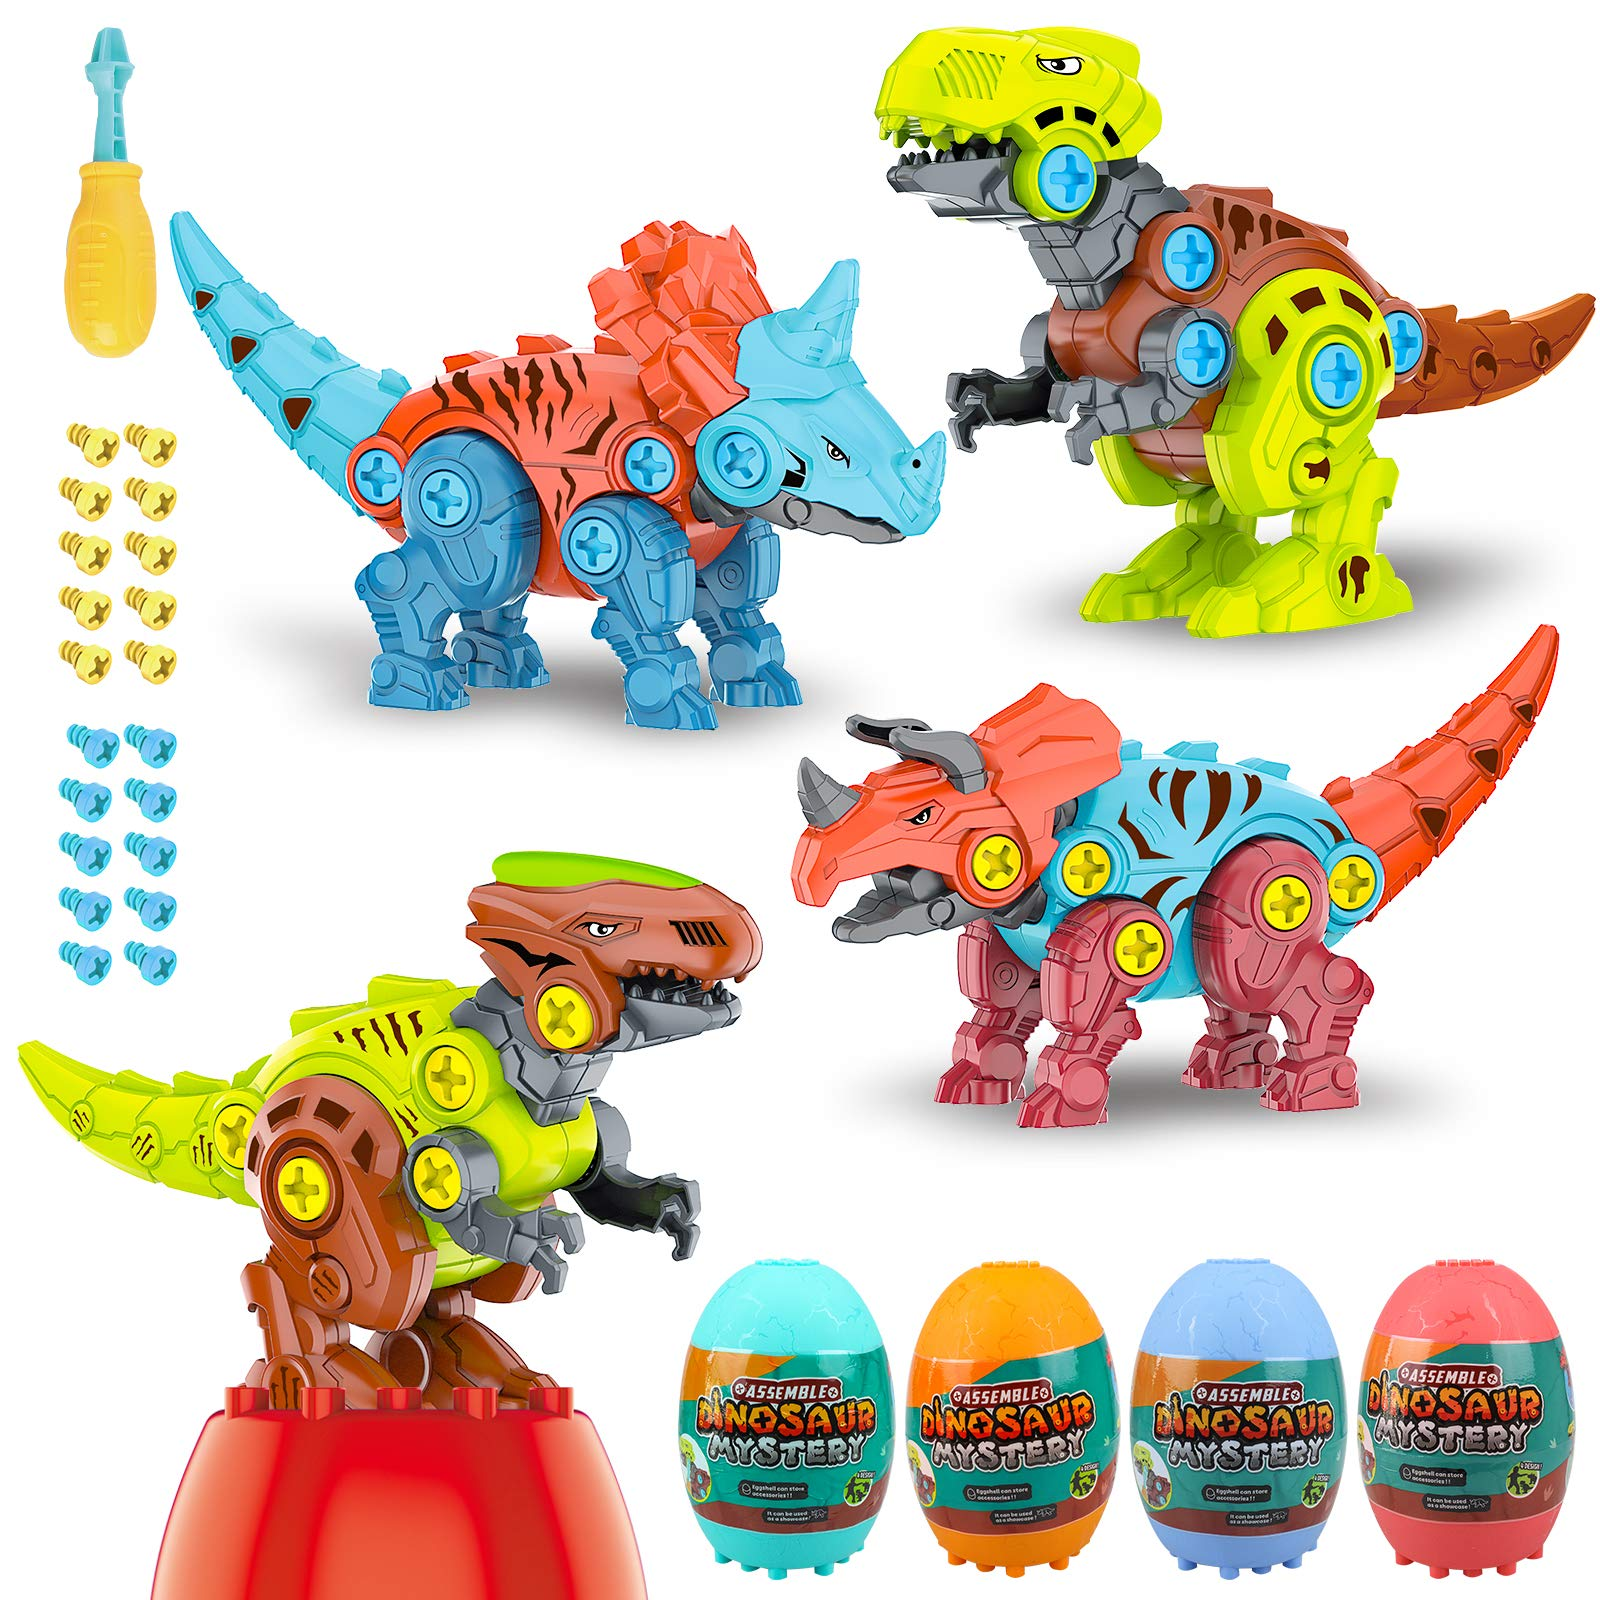 SJFEEVOR Dinosaur Easter Eggs with Take Apart Dinosaur Toys for Kids 3-5